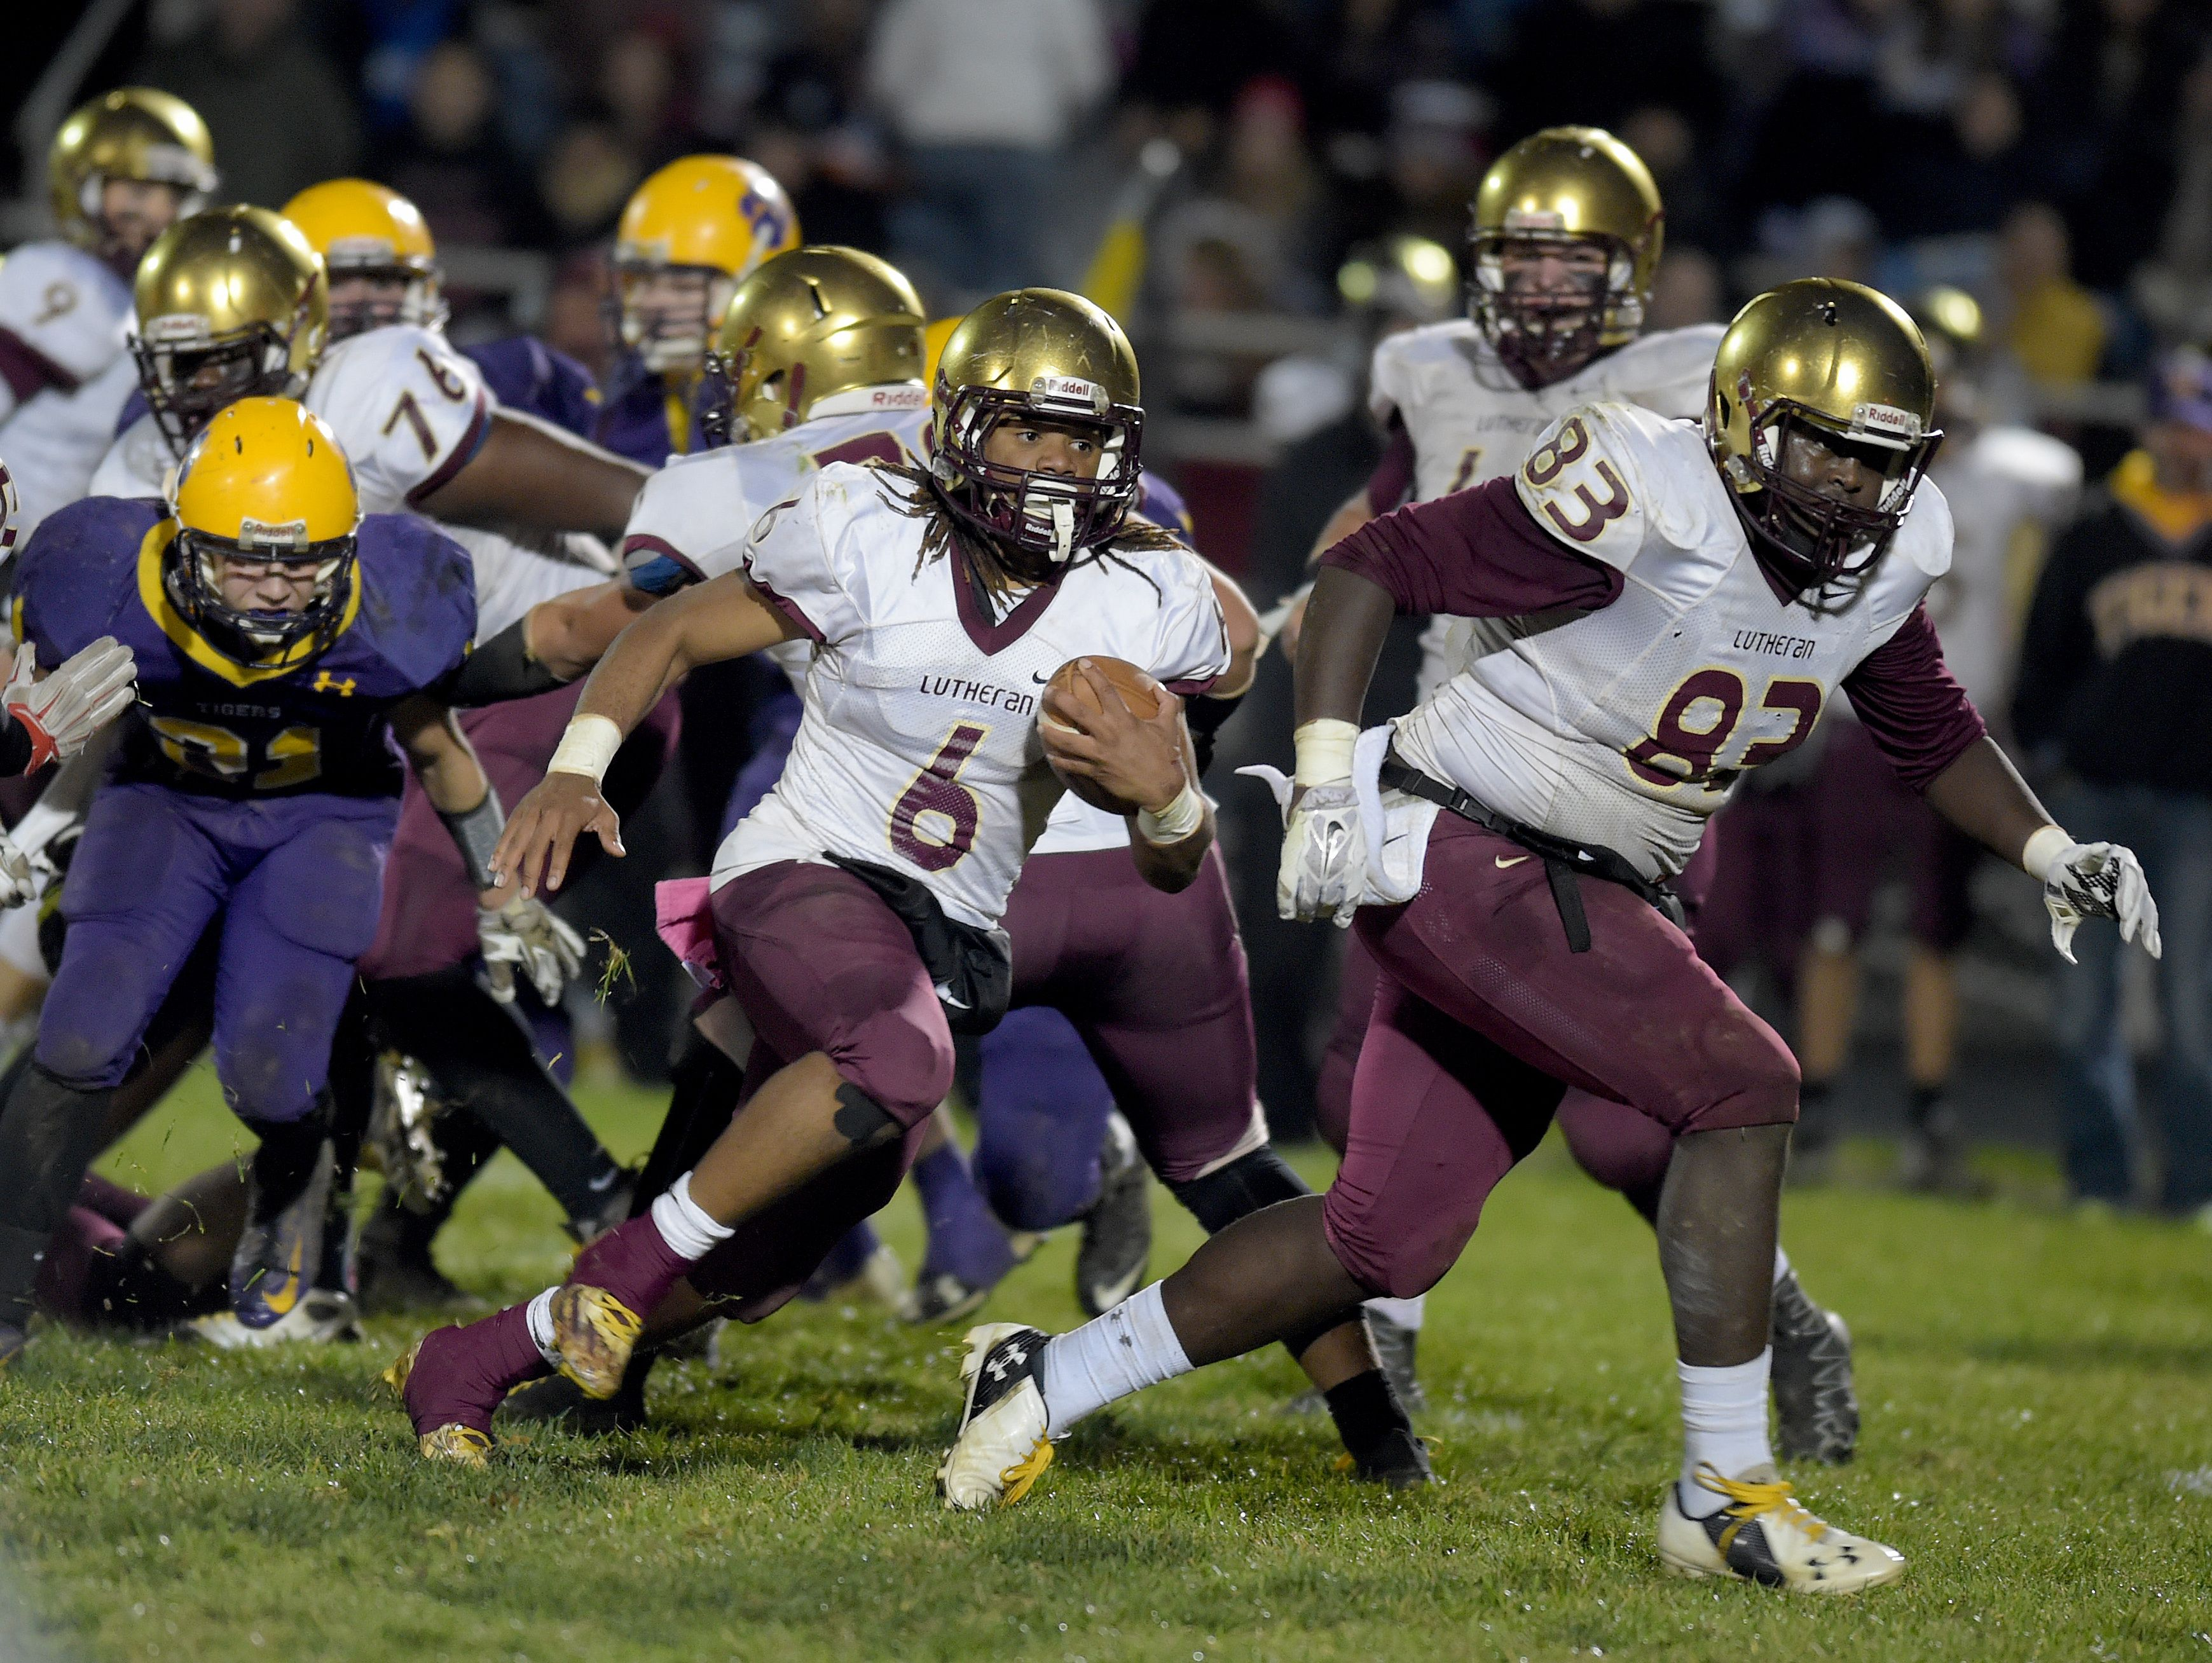 Indianapolis Lutheran's Andre Jones runs the ball against Hagerstown during a sectional football game Friday, Nov. 4, 2016 in Hagerstown.